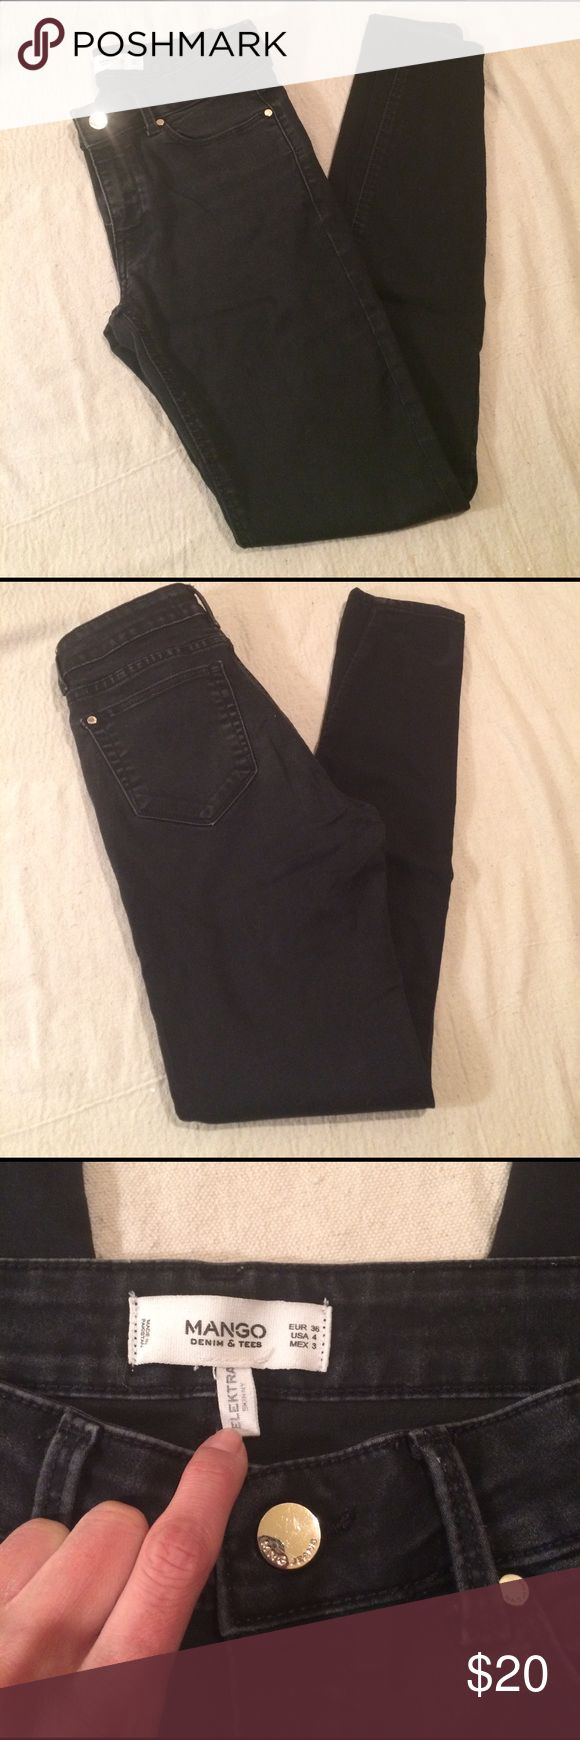 Mango Skinny Elektra Black Pants Size 4 Price drop. Nice black skinny jeans by Mango. It has gold detail, some fade to it, some was nature condition from purchase. No snags or tears. Hardly worn. I normally wear size 24/25, and it fit me perfectly. ✨Looking to close down my posh closet by March 15th, if you are interested in anything, please give reasonable offers before it's too late!✨ Mango Pants Skinny